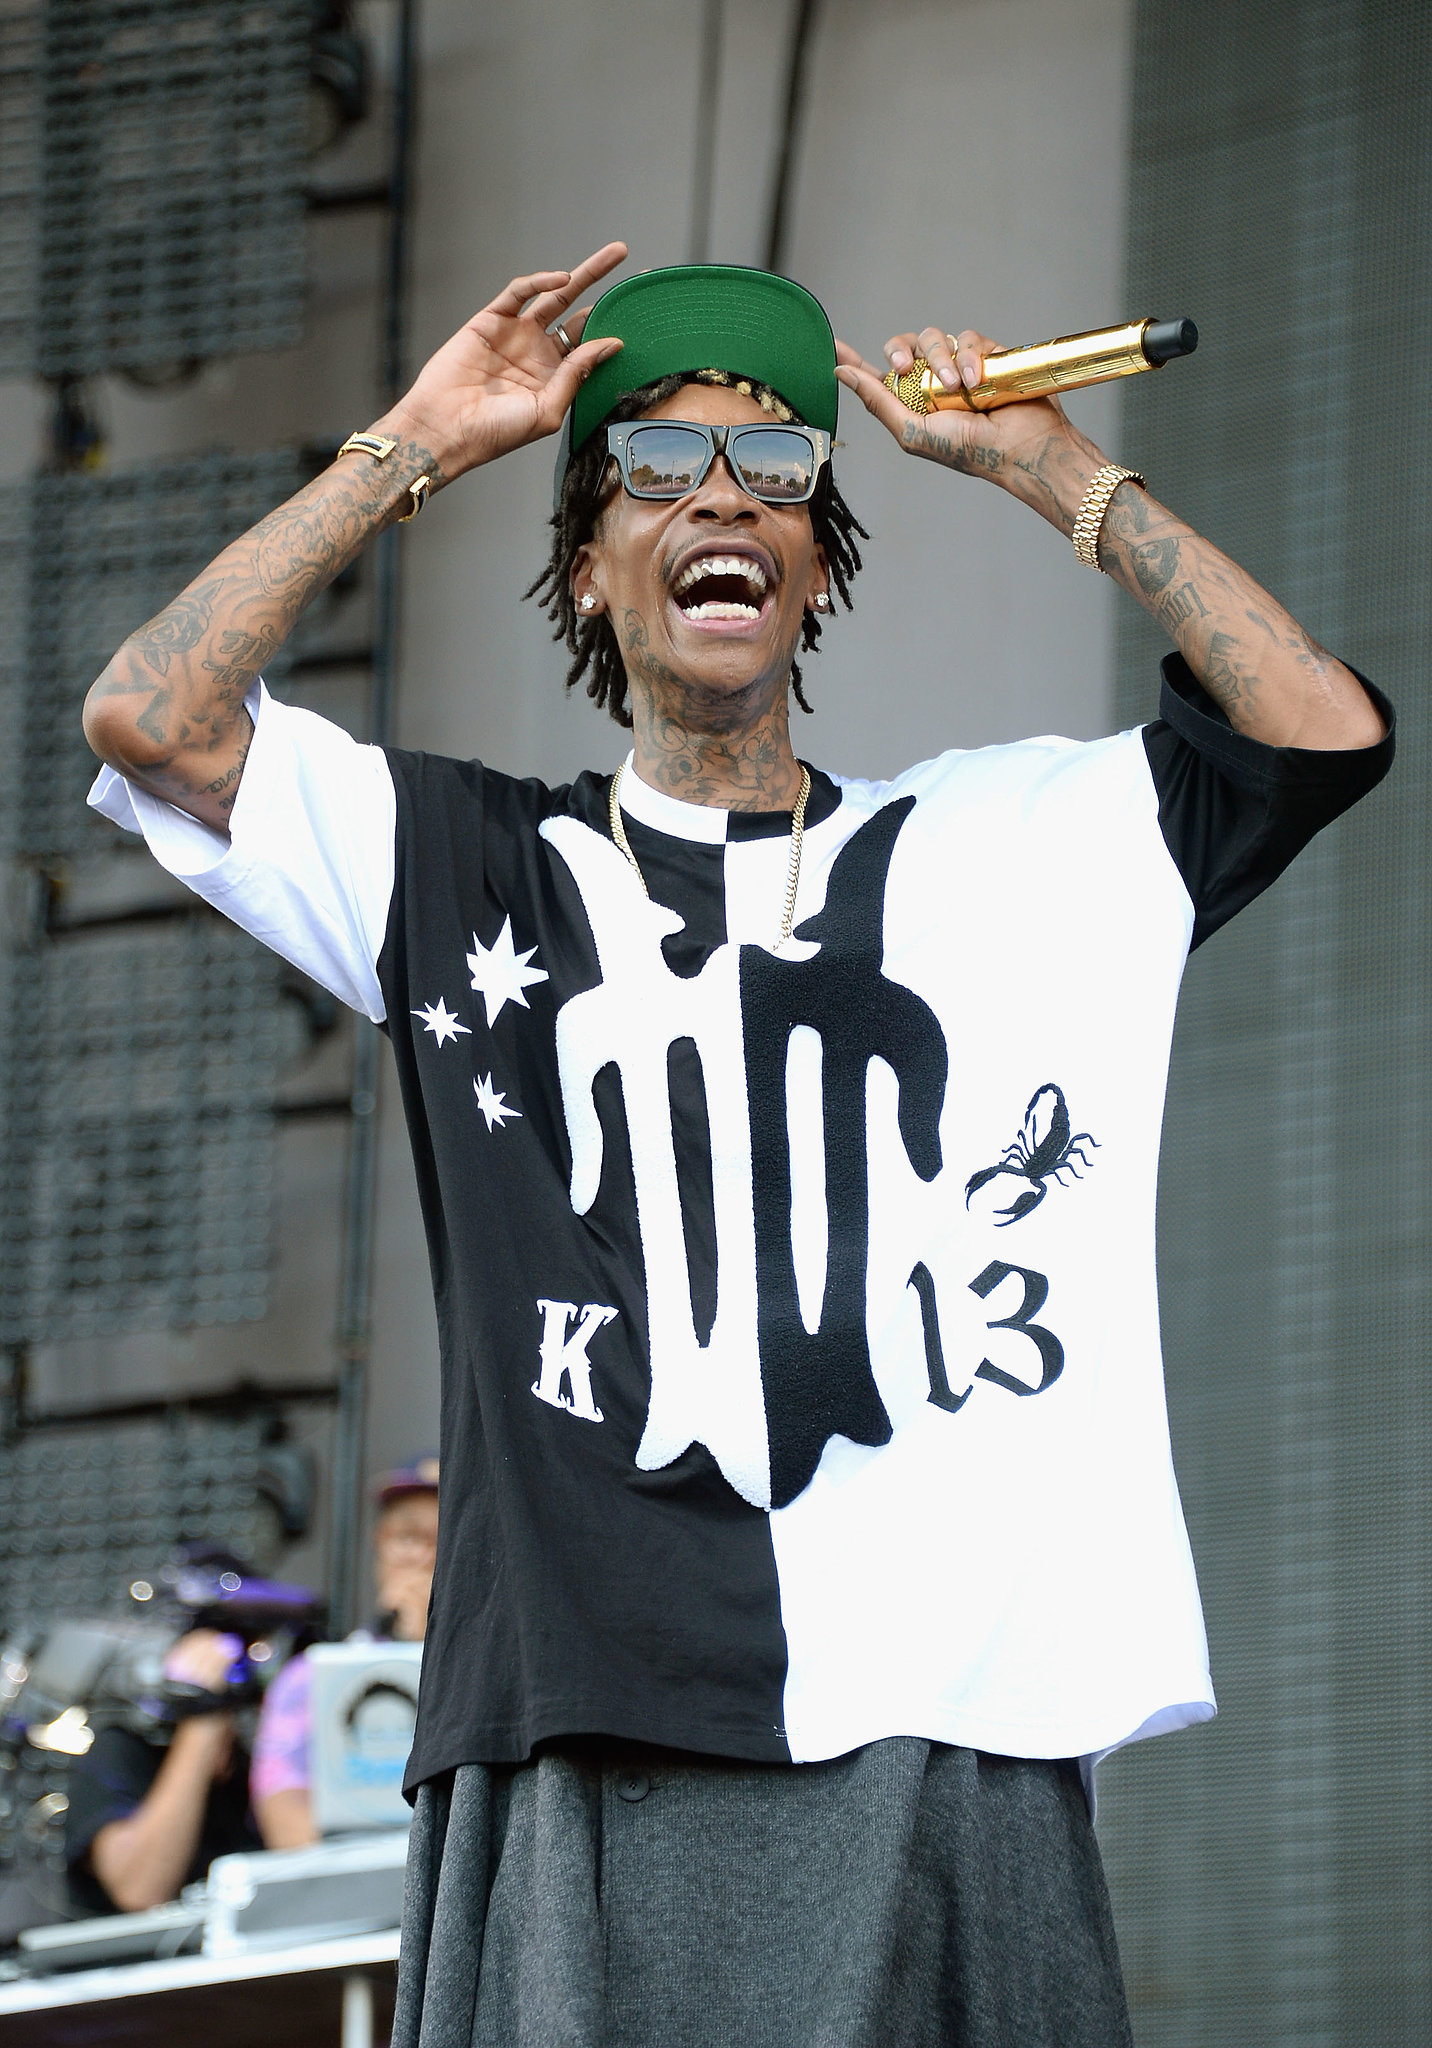 Wiz Khalifa performed at the festival.